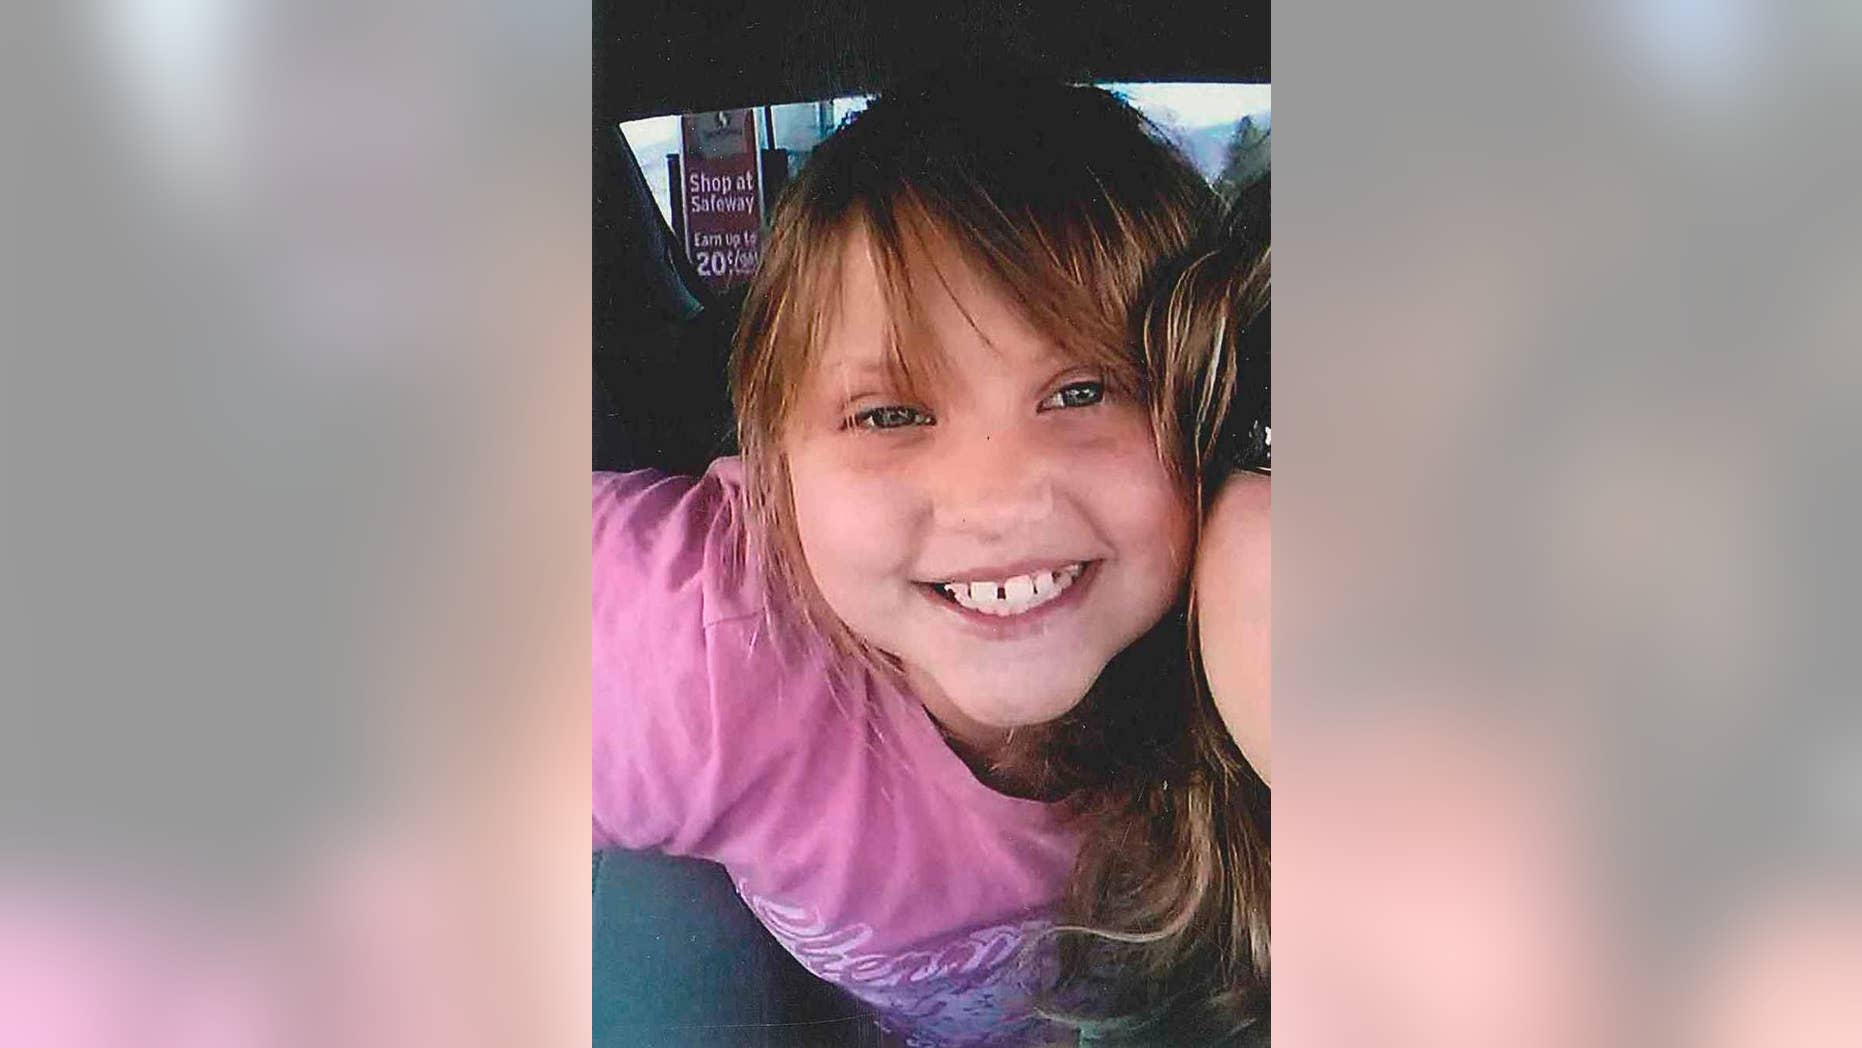 """This undated photo provided by the Bullhead City Police Department shows Isabella """"Bella"""" Grogan-Cannella, an 8-year-old Bullhead City, Ariz., girl who was reported missing on Tuesday, Sept. 2, 2014. Police, firefighters and volunteers fanned out in Bullhead city neighborhoods, nearby parks and river areas to look for the missing child. (AP Photo/Courtesy of the Bullhead City Police Department)"""